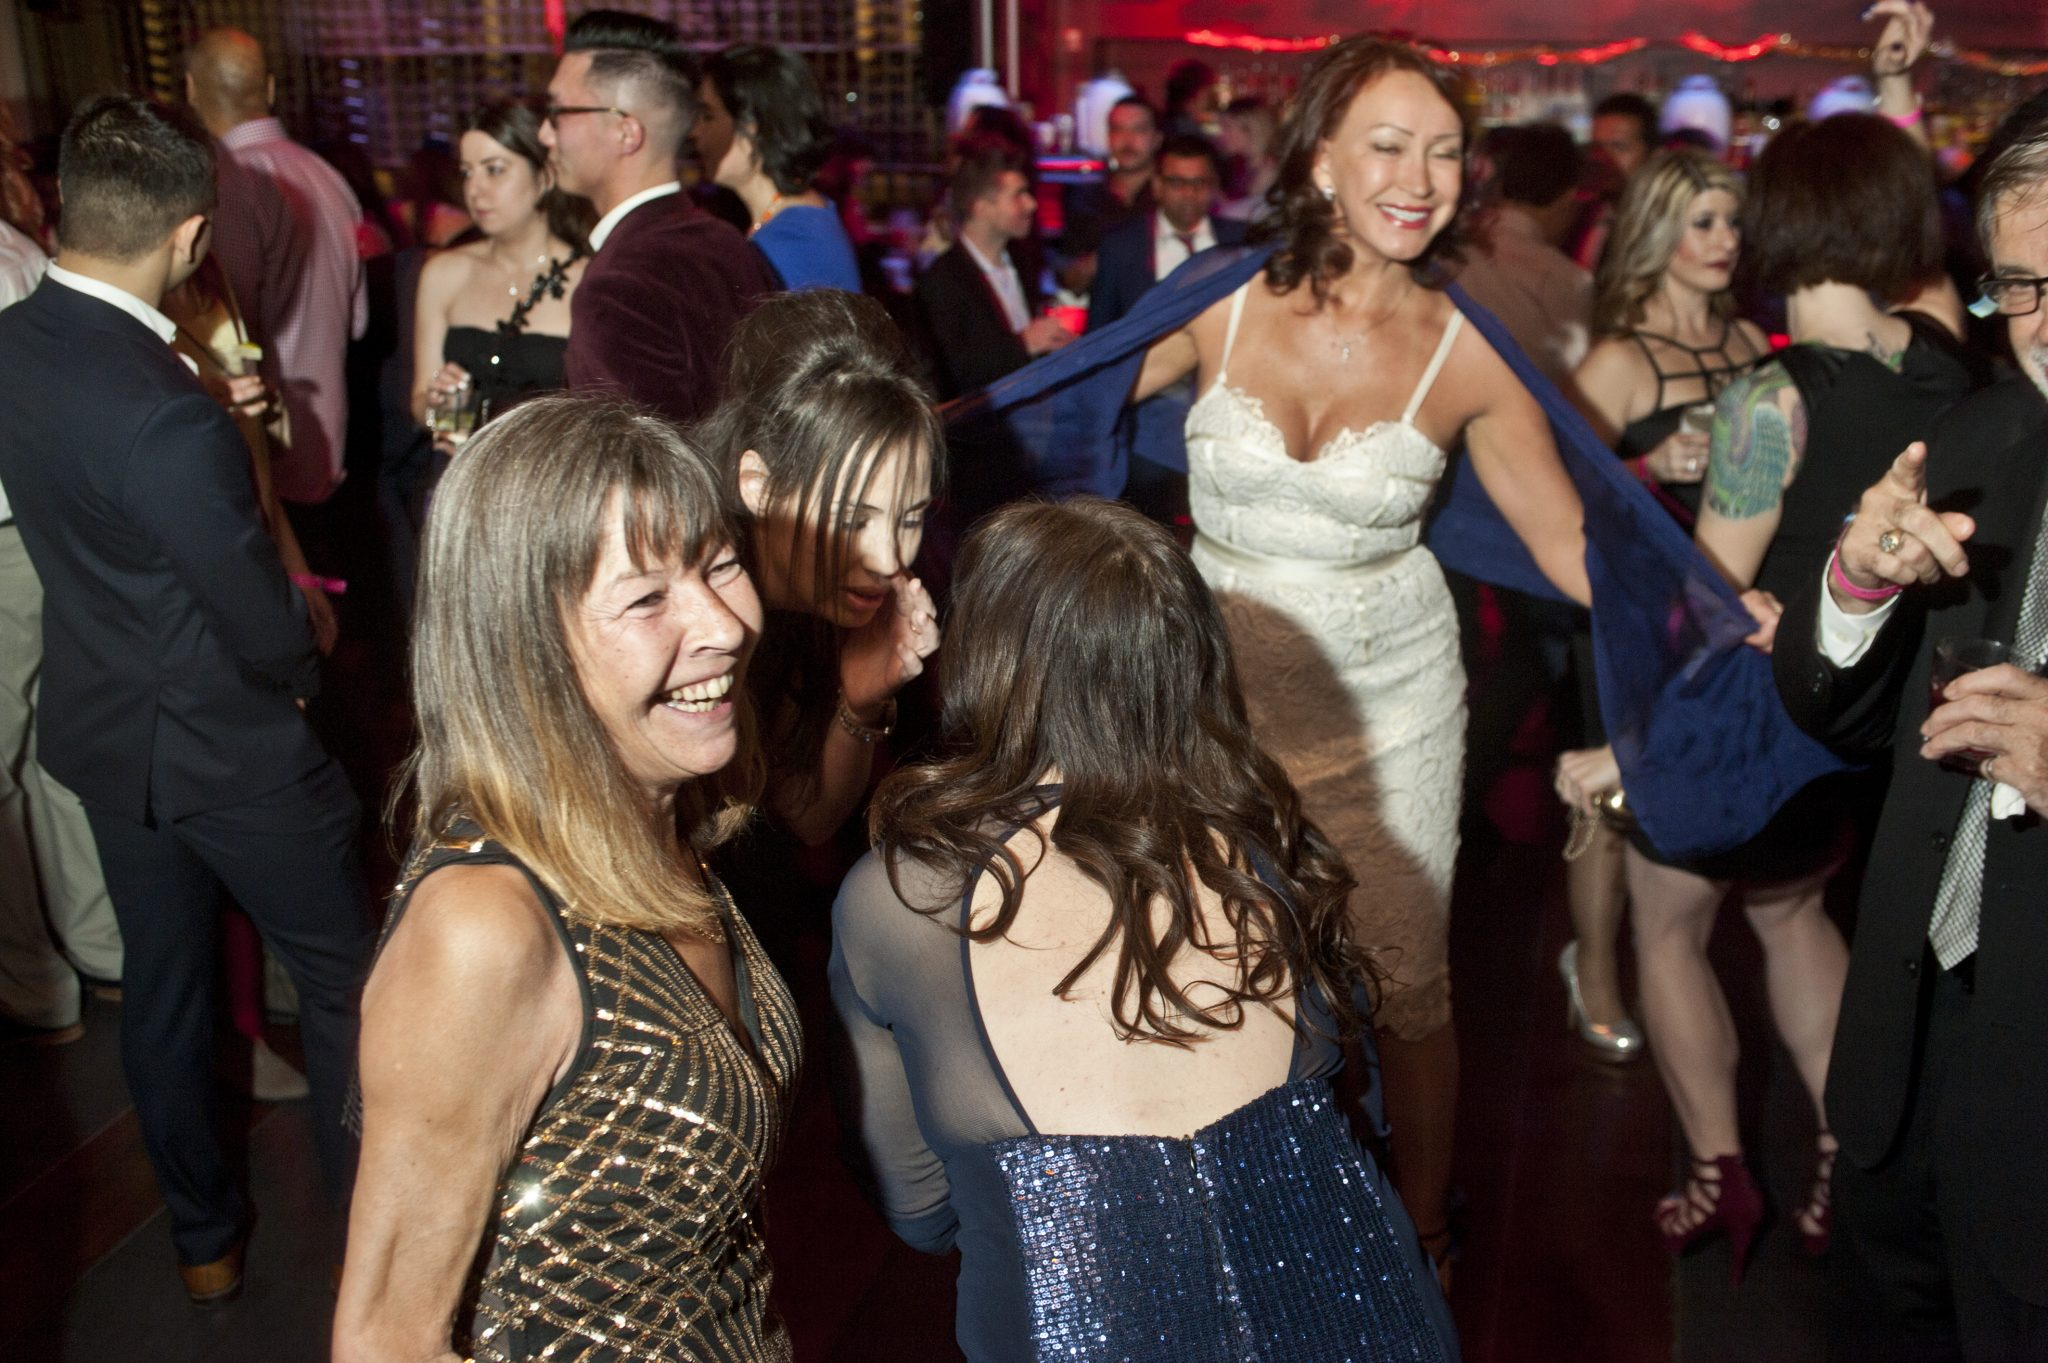 Waterfront Magazine's 2016 New Year's Eve Party